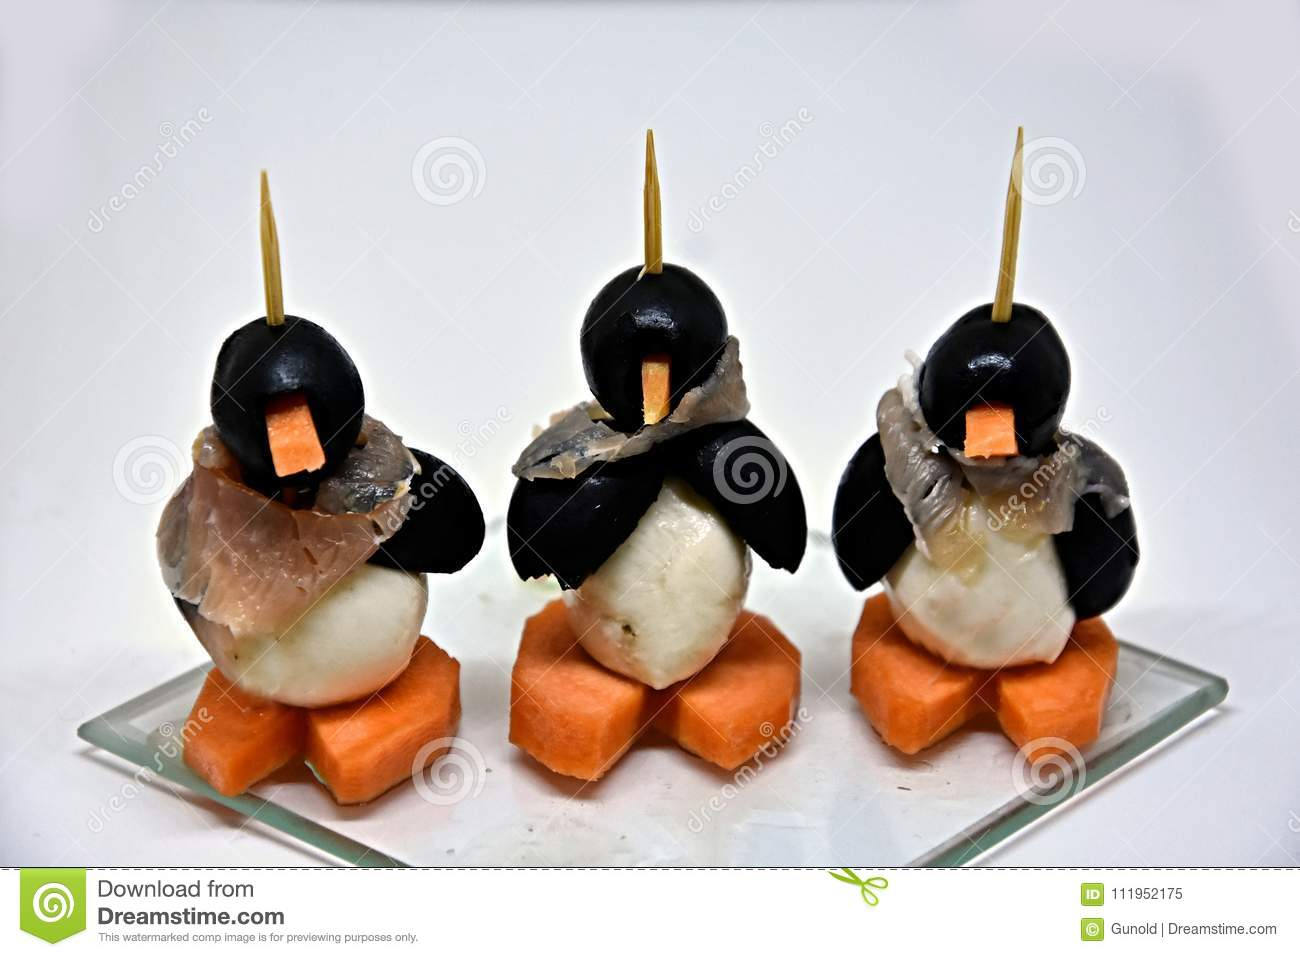 Finger Food Funny Edible Small Penguins Stock Image Image Of